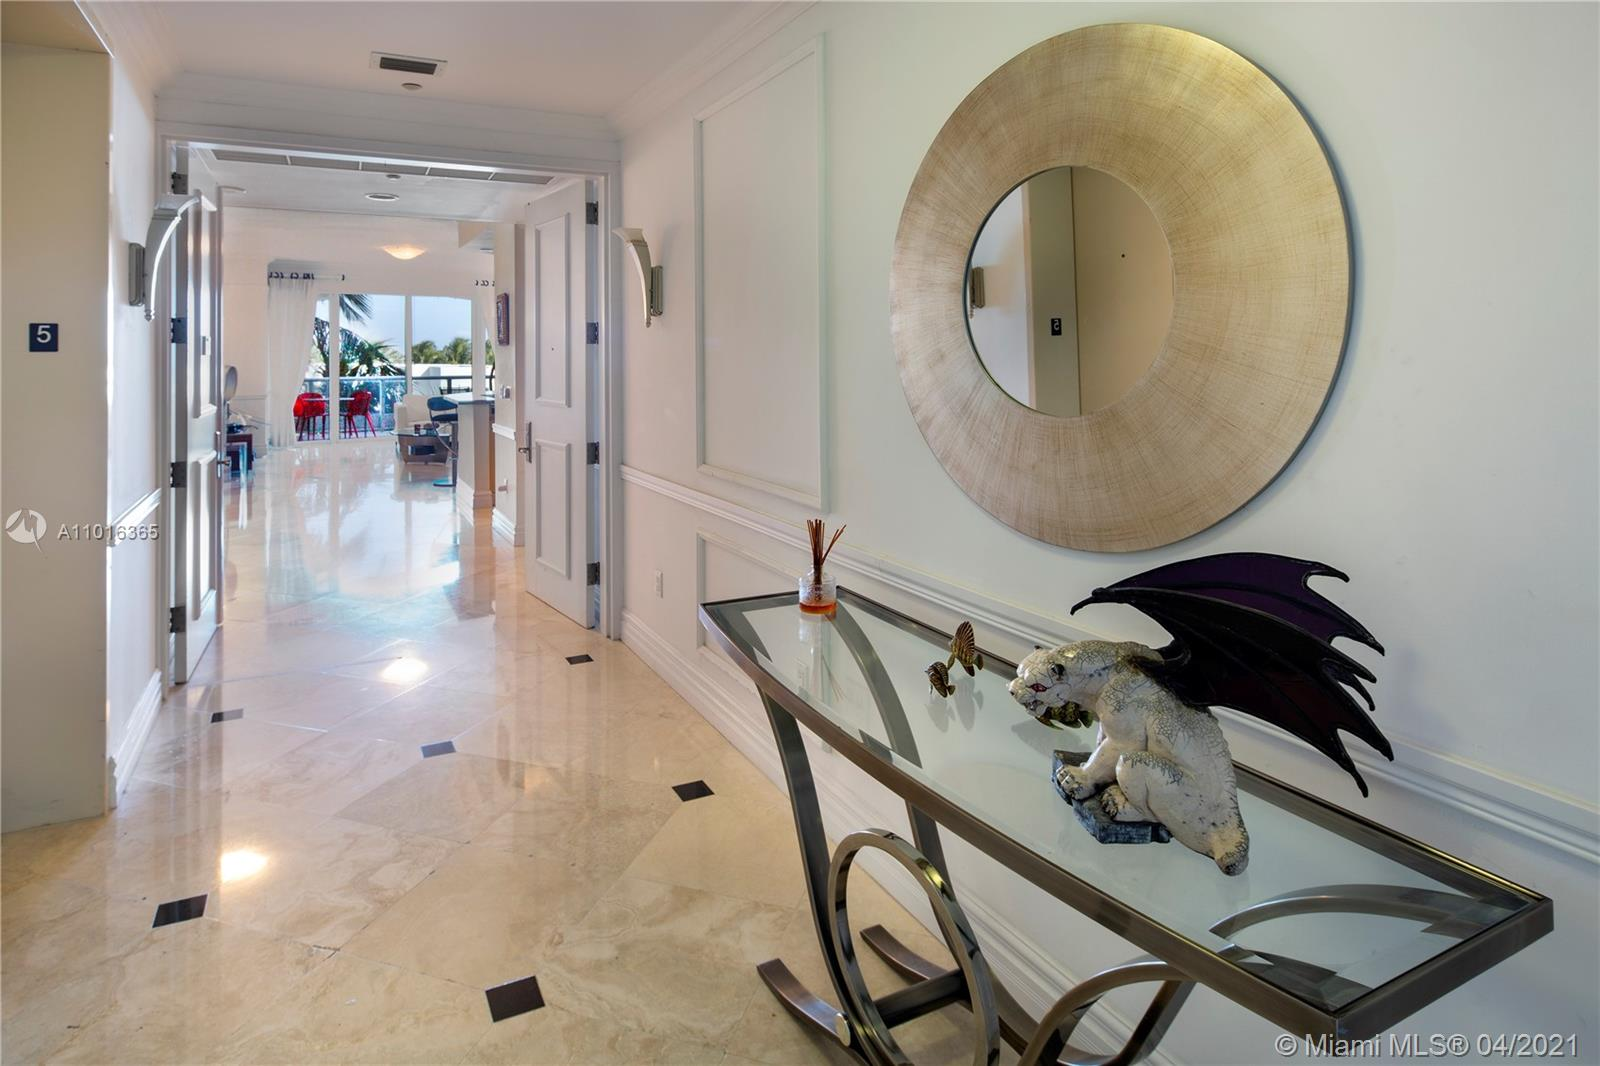 A spacious lower floor apartment at the Continuum South Beach, a gated oceanfront community in Miami Beach.  This 2/2.5 apartment has an open floorplan and a grand terrace with garden-type views that overlook the pool and ocean.  Feels like a townhome. The apartment has ten foot ceilings, an open kitchen design and modern features and finishes.  Continuum is a full-service private community with over 12 acres of resort amenities, a private beach club, three pools, tennis courts, a restaurant and a world-class health and fitness pavilion.  Continuum sits at the south point of Miami Beach, in the SOFI (South of Fifth) district.